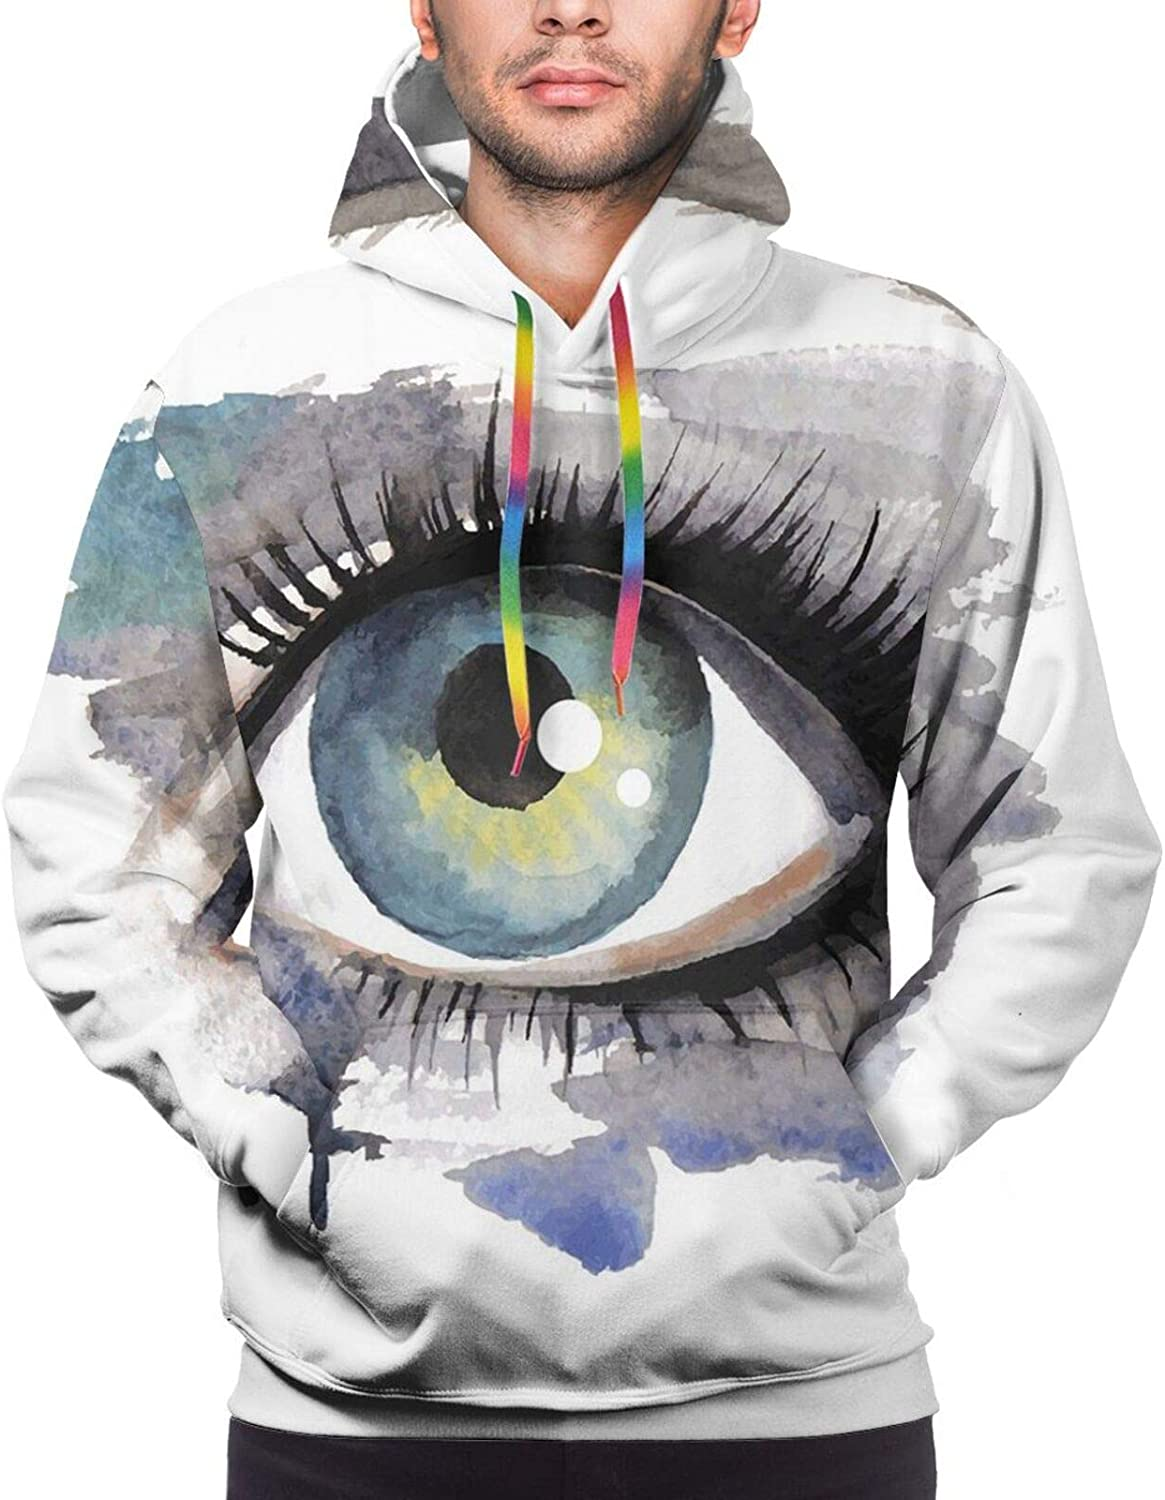 Men's Hoodies Sweatshirts,Hand Painted Style Round Shapes Pattern in Different Pastel Colors Abstract Design